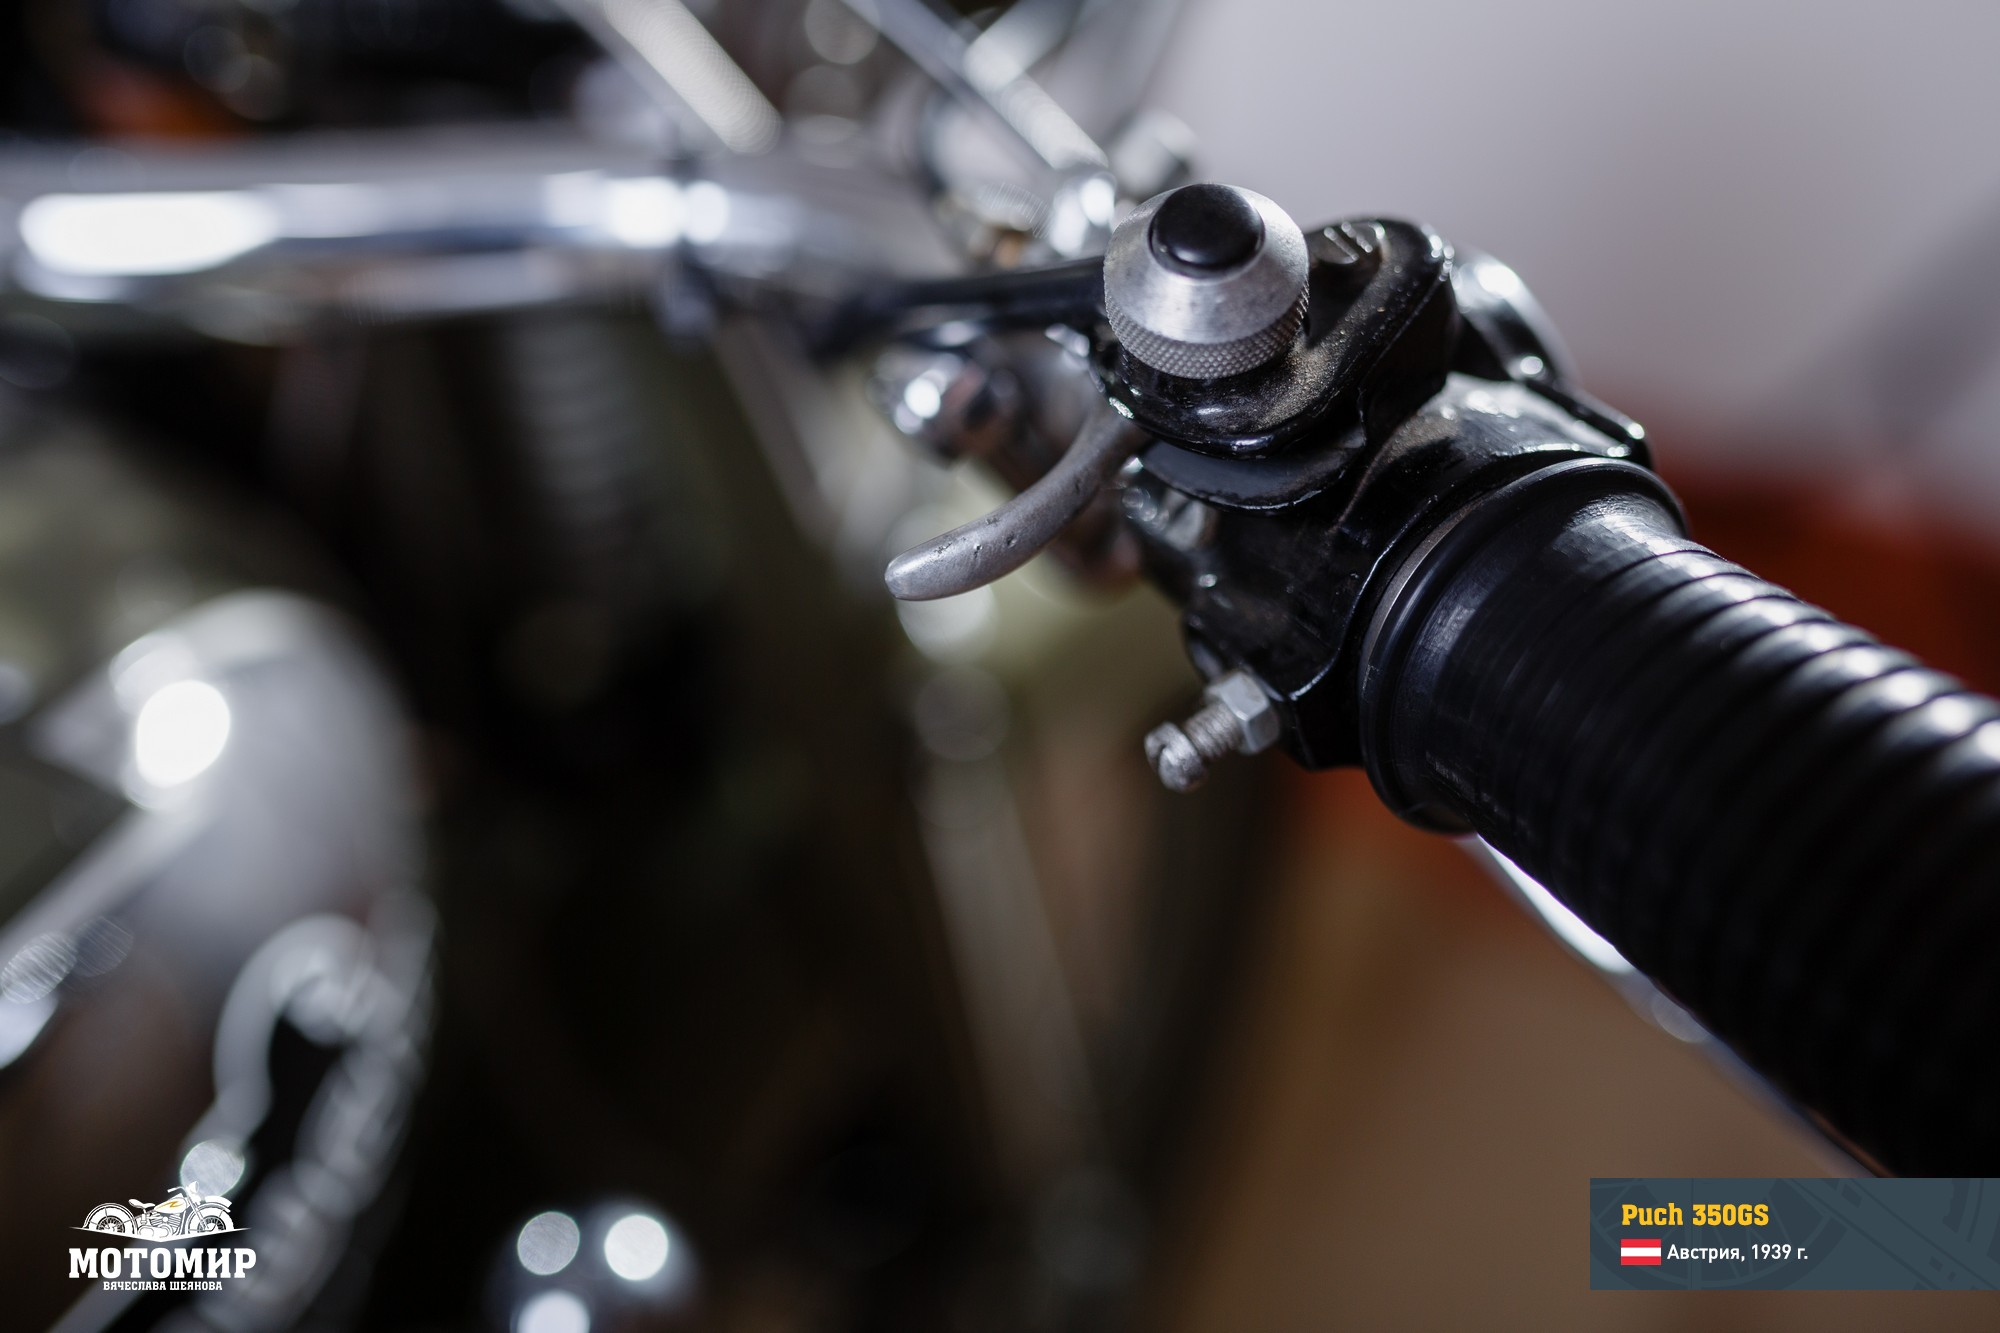 puch-350gs-201601-web-16